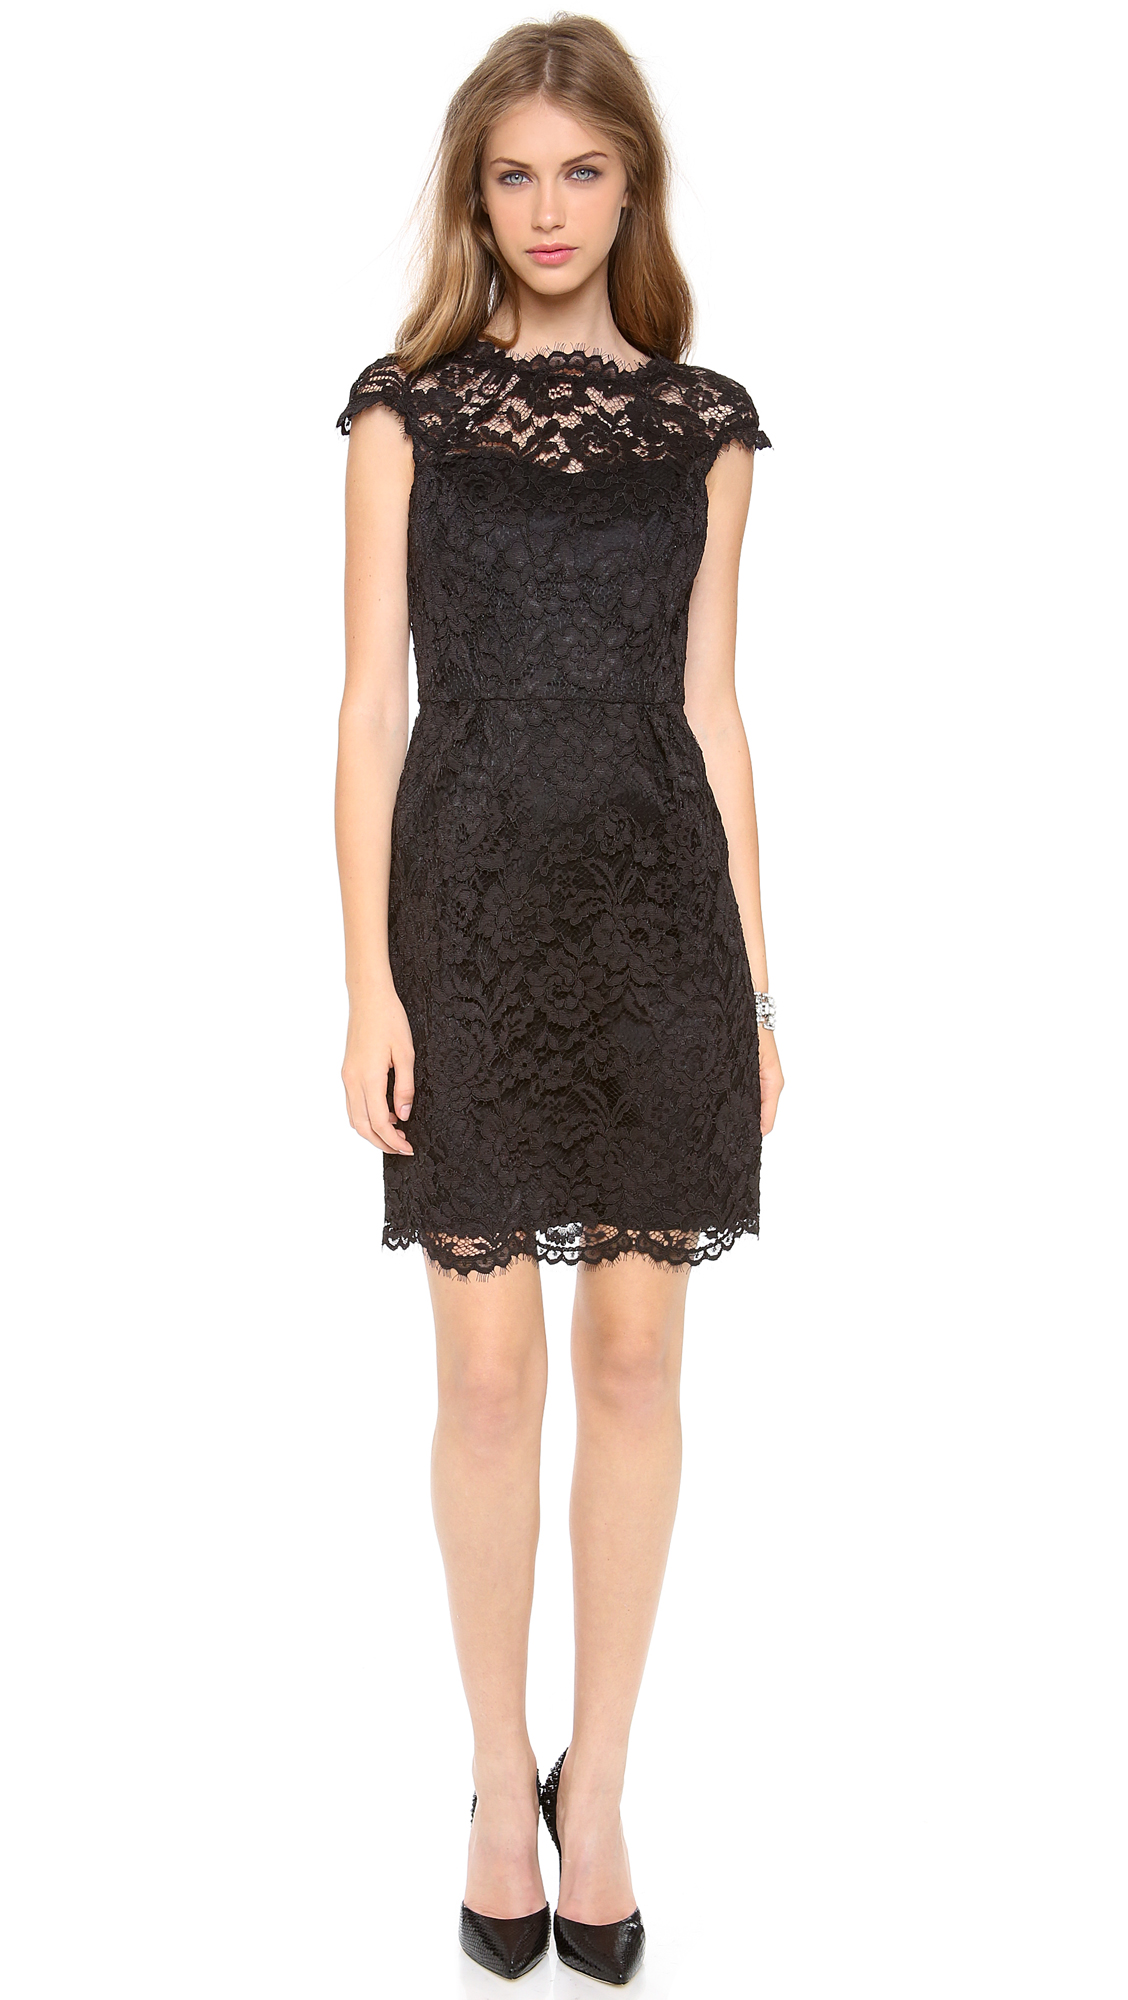 Shoshanna Sale Dresses Shoshanna Lace Olivia Dress